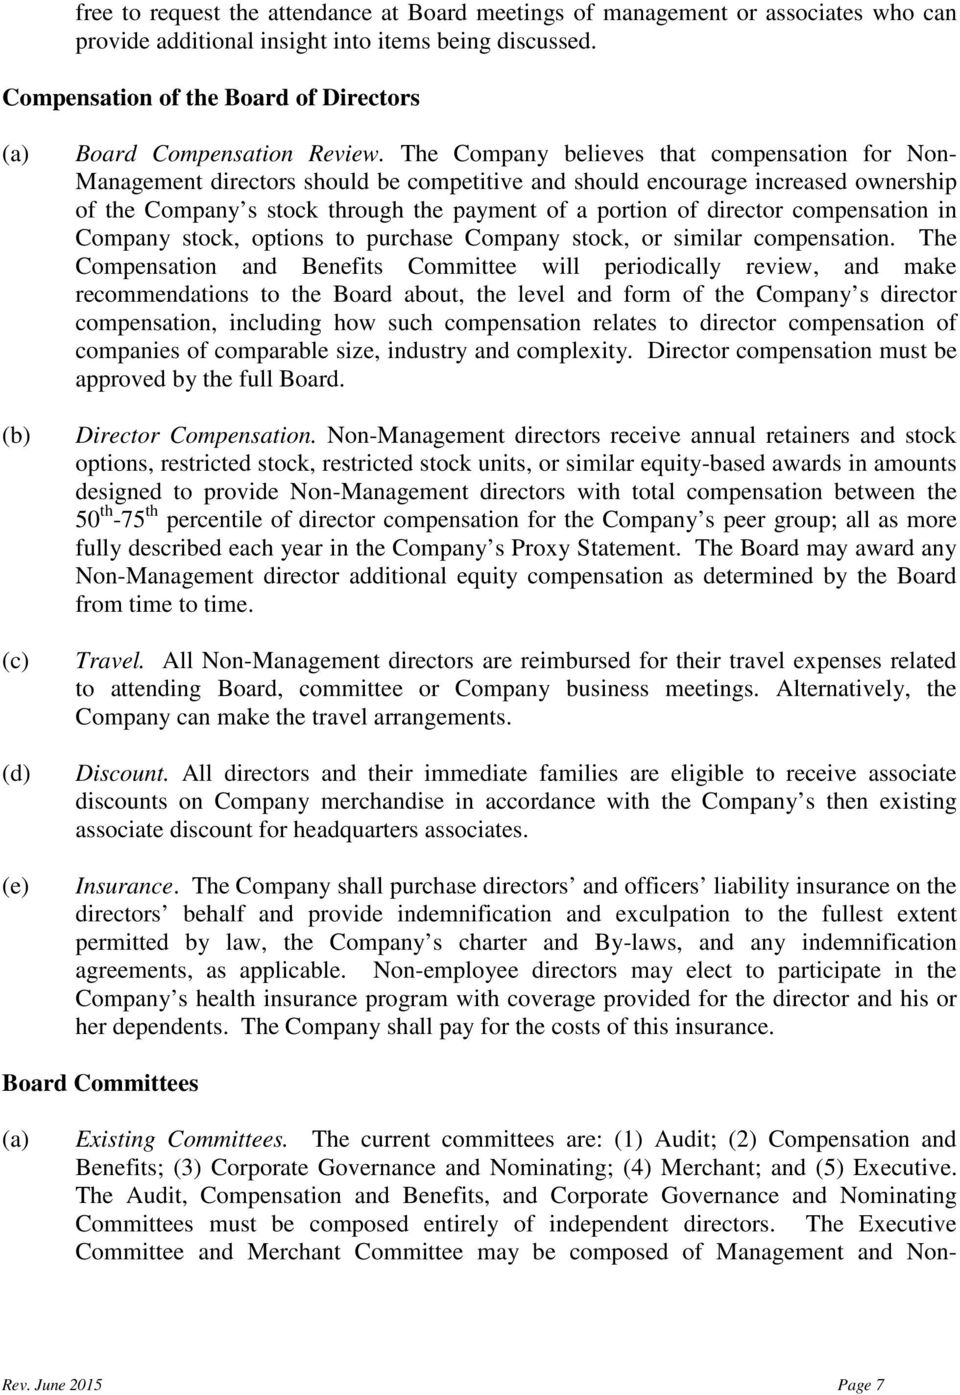 The Company believes that compensation for Non- Management directors should be competitive and should encourage increased ownership of the Company s stock through the payment of a portion of director